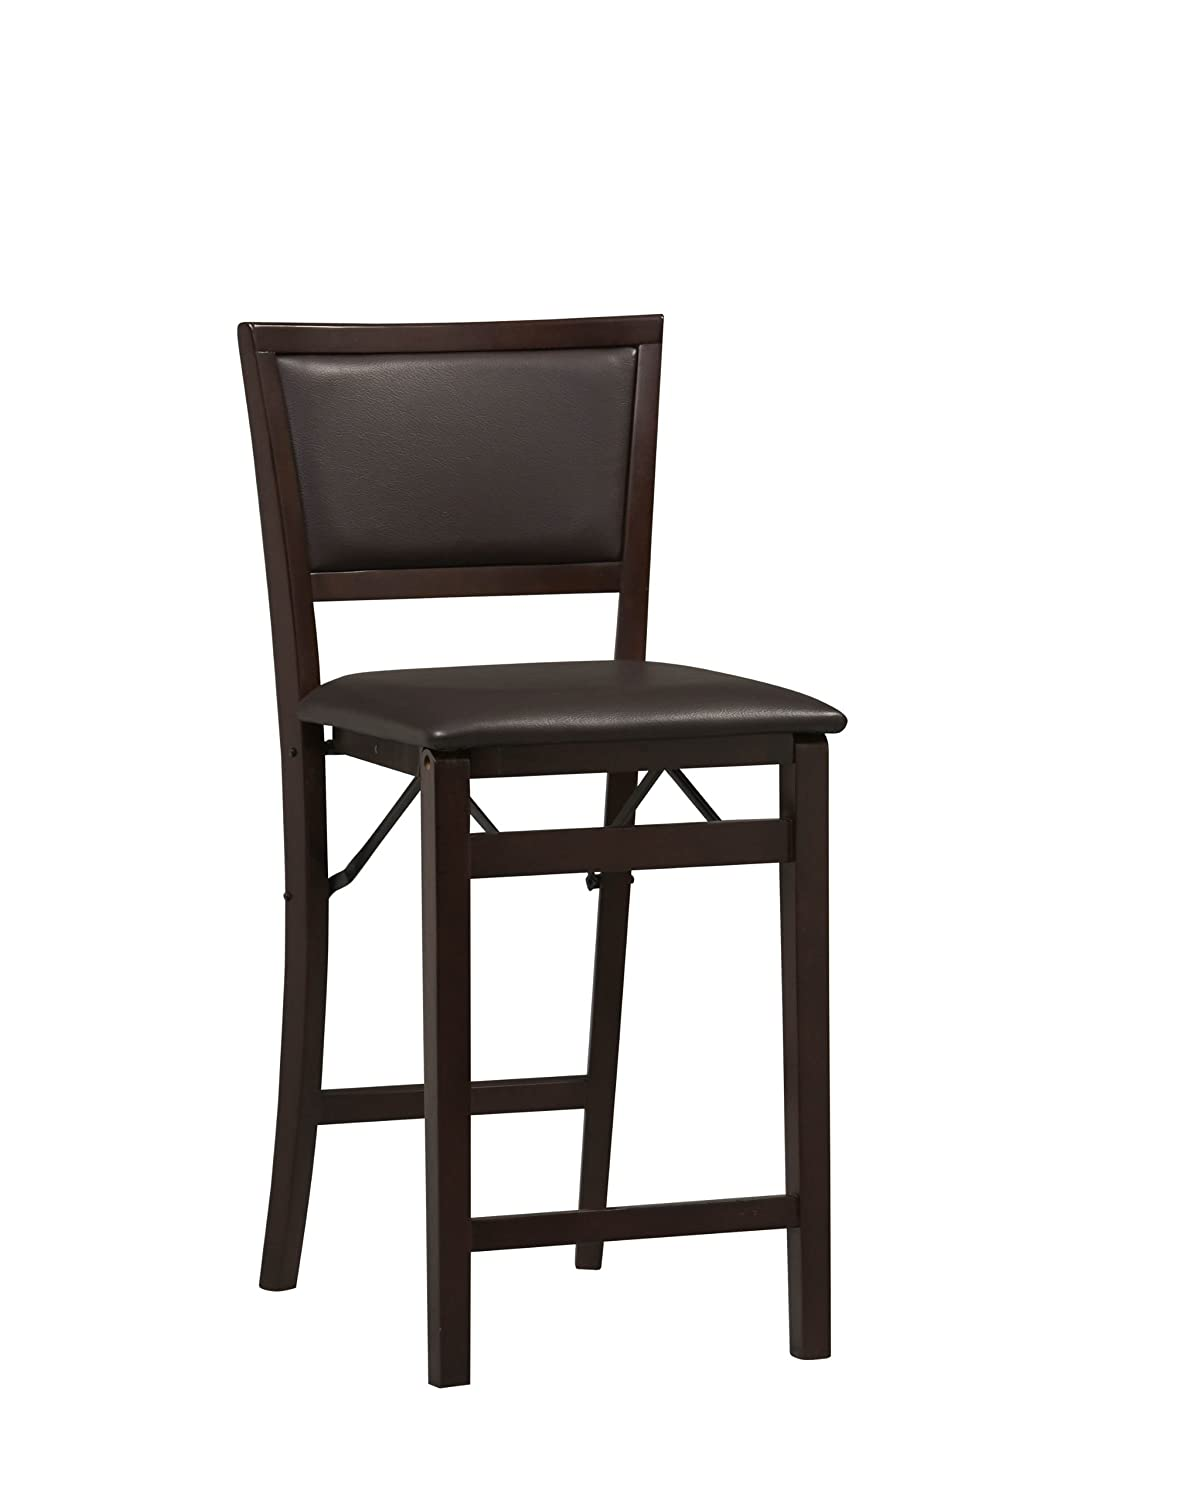 Attractive Amazon.com: Linon Home Decor Keira Pad Back Folding Counter Stool, 24 Inch:  Kitchen U0026 Dining